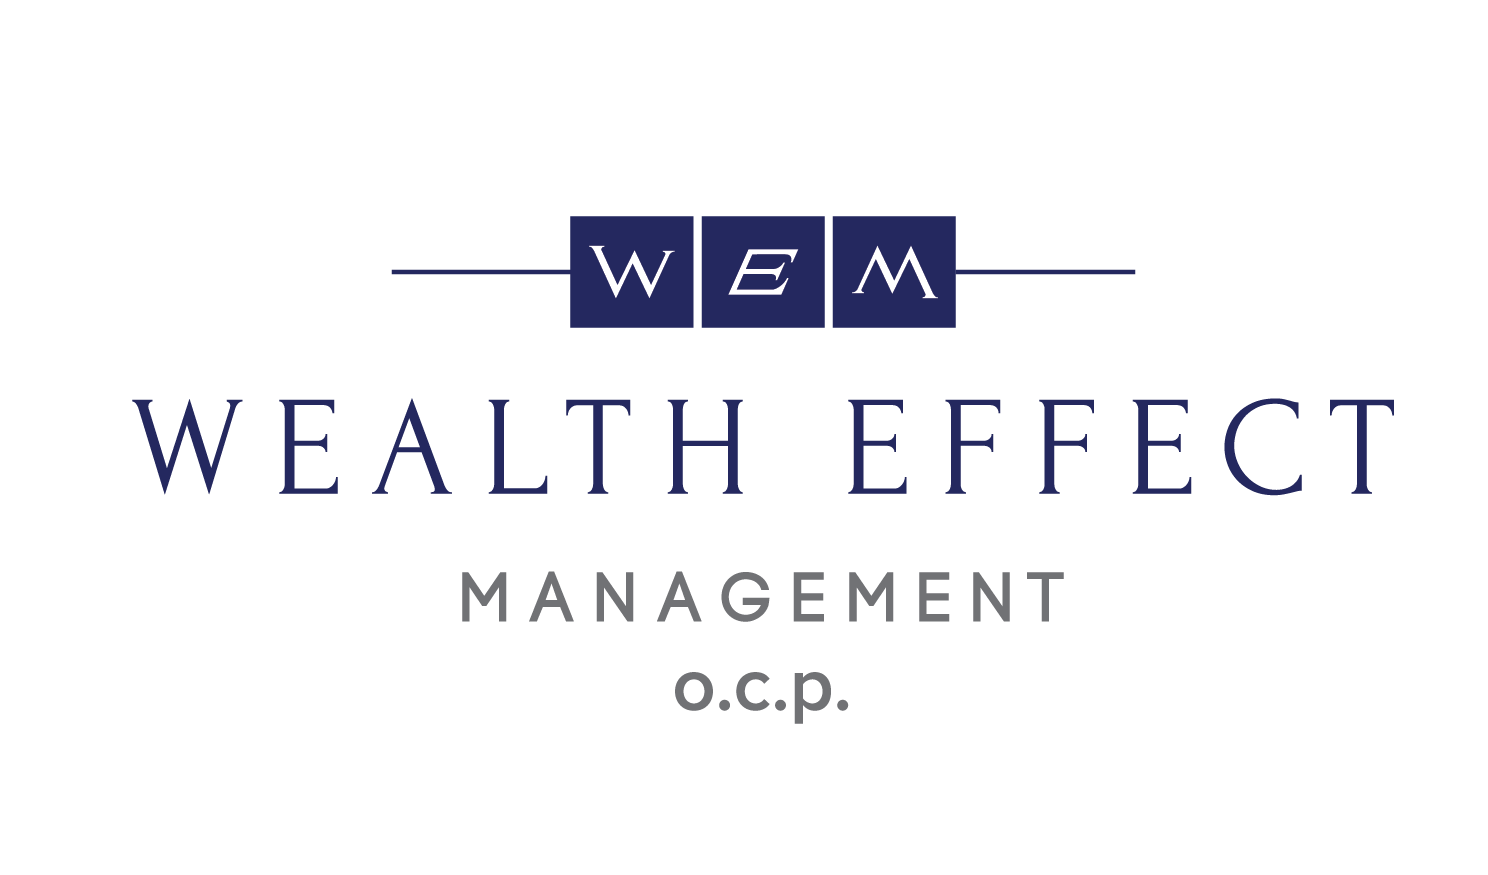 Wealth Effect Management o.c.p.